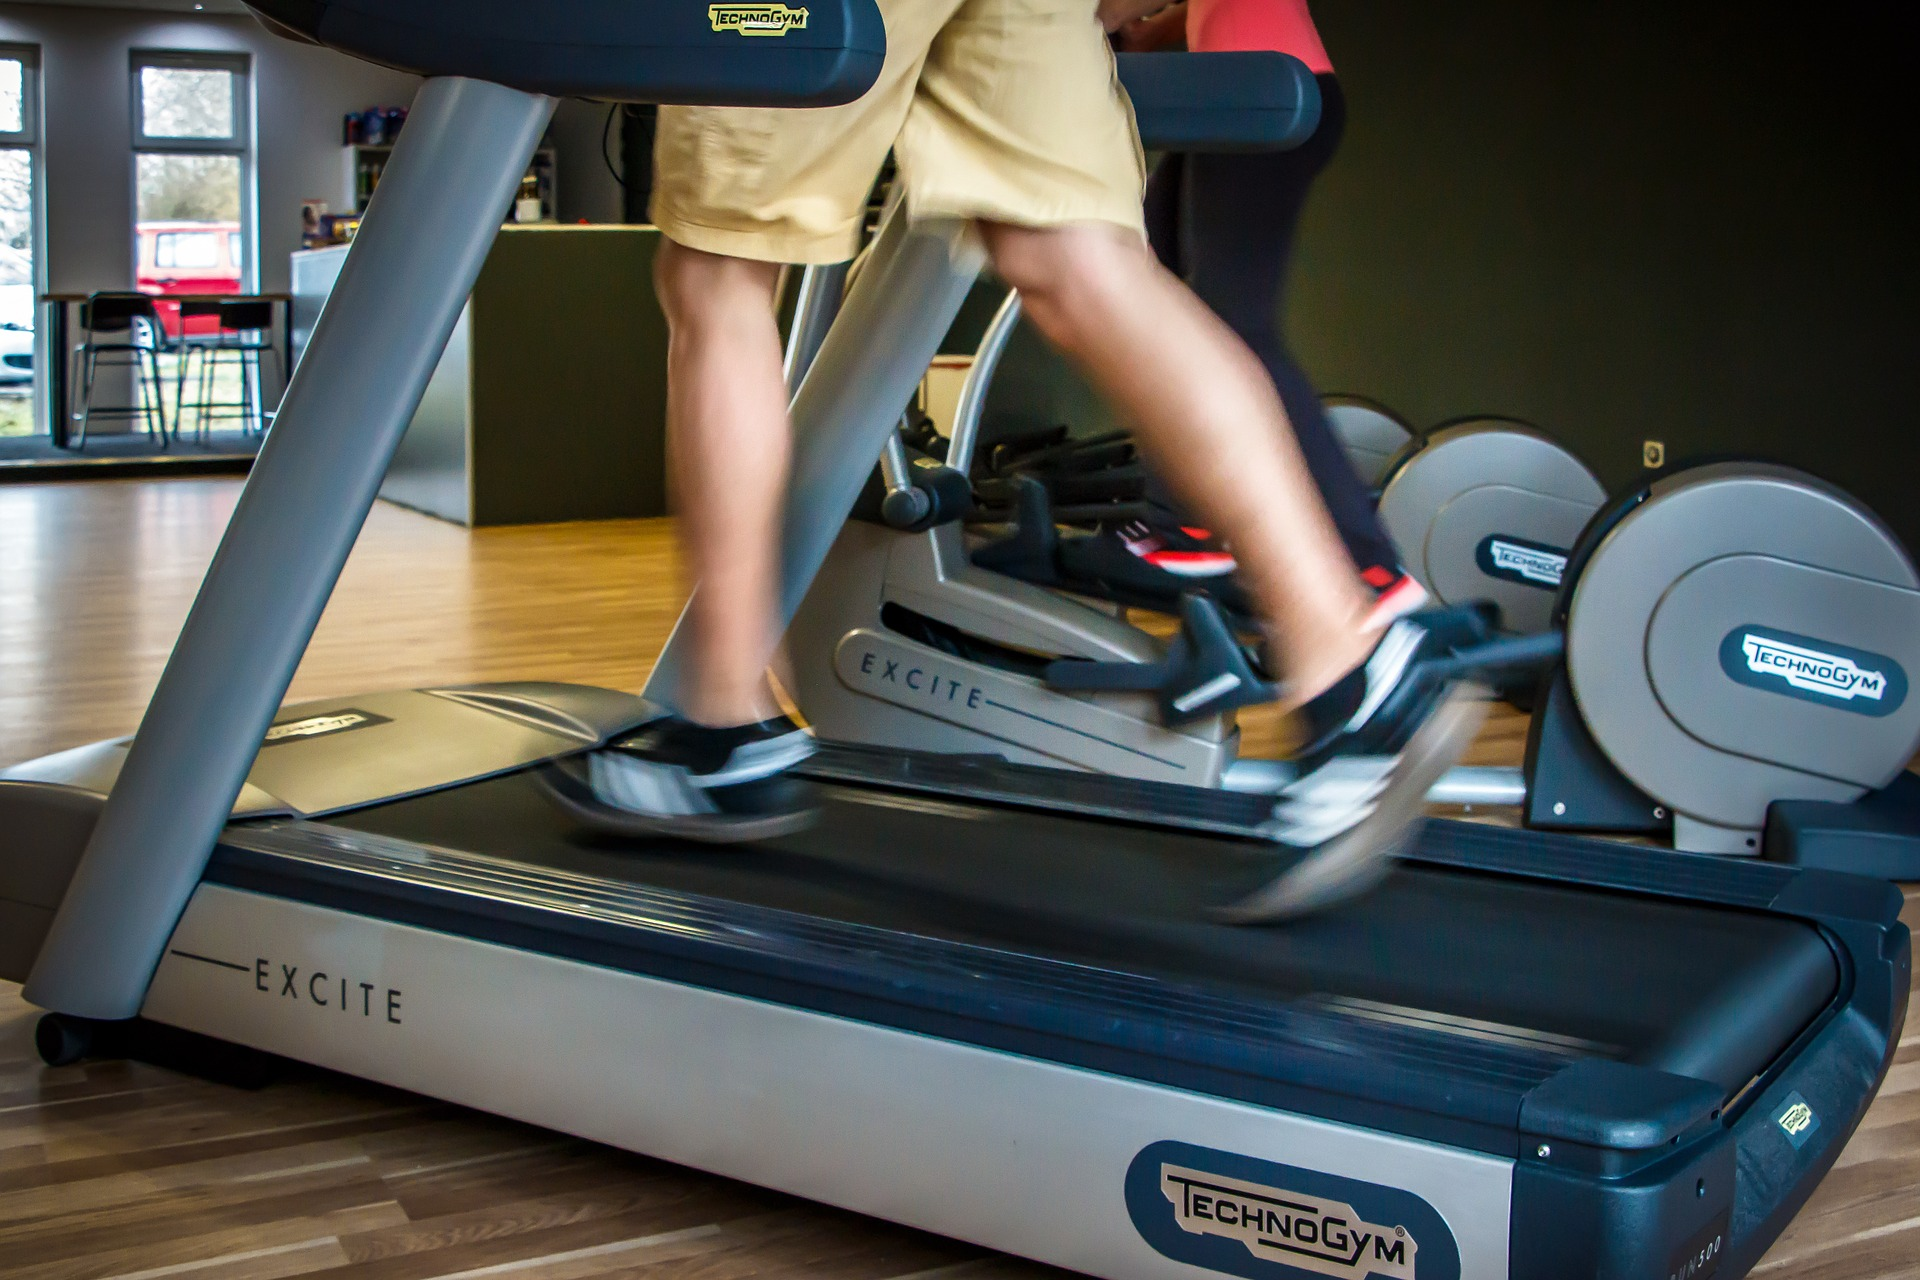 What treadmill speed helps me burn fat and lose weight? - Fat